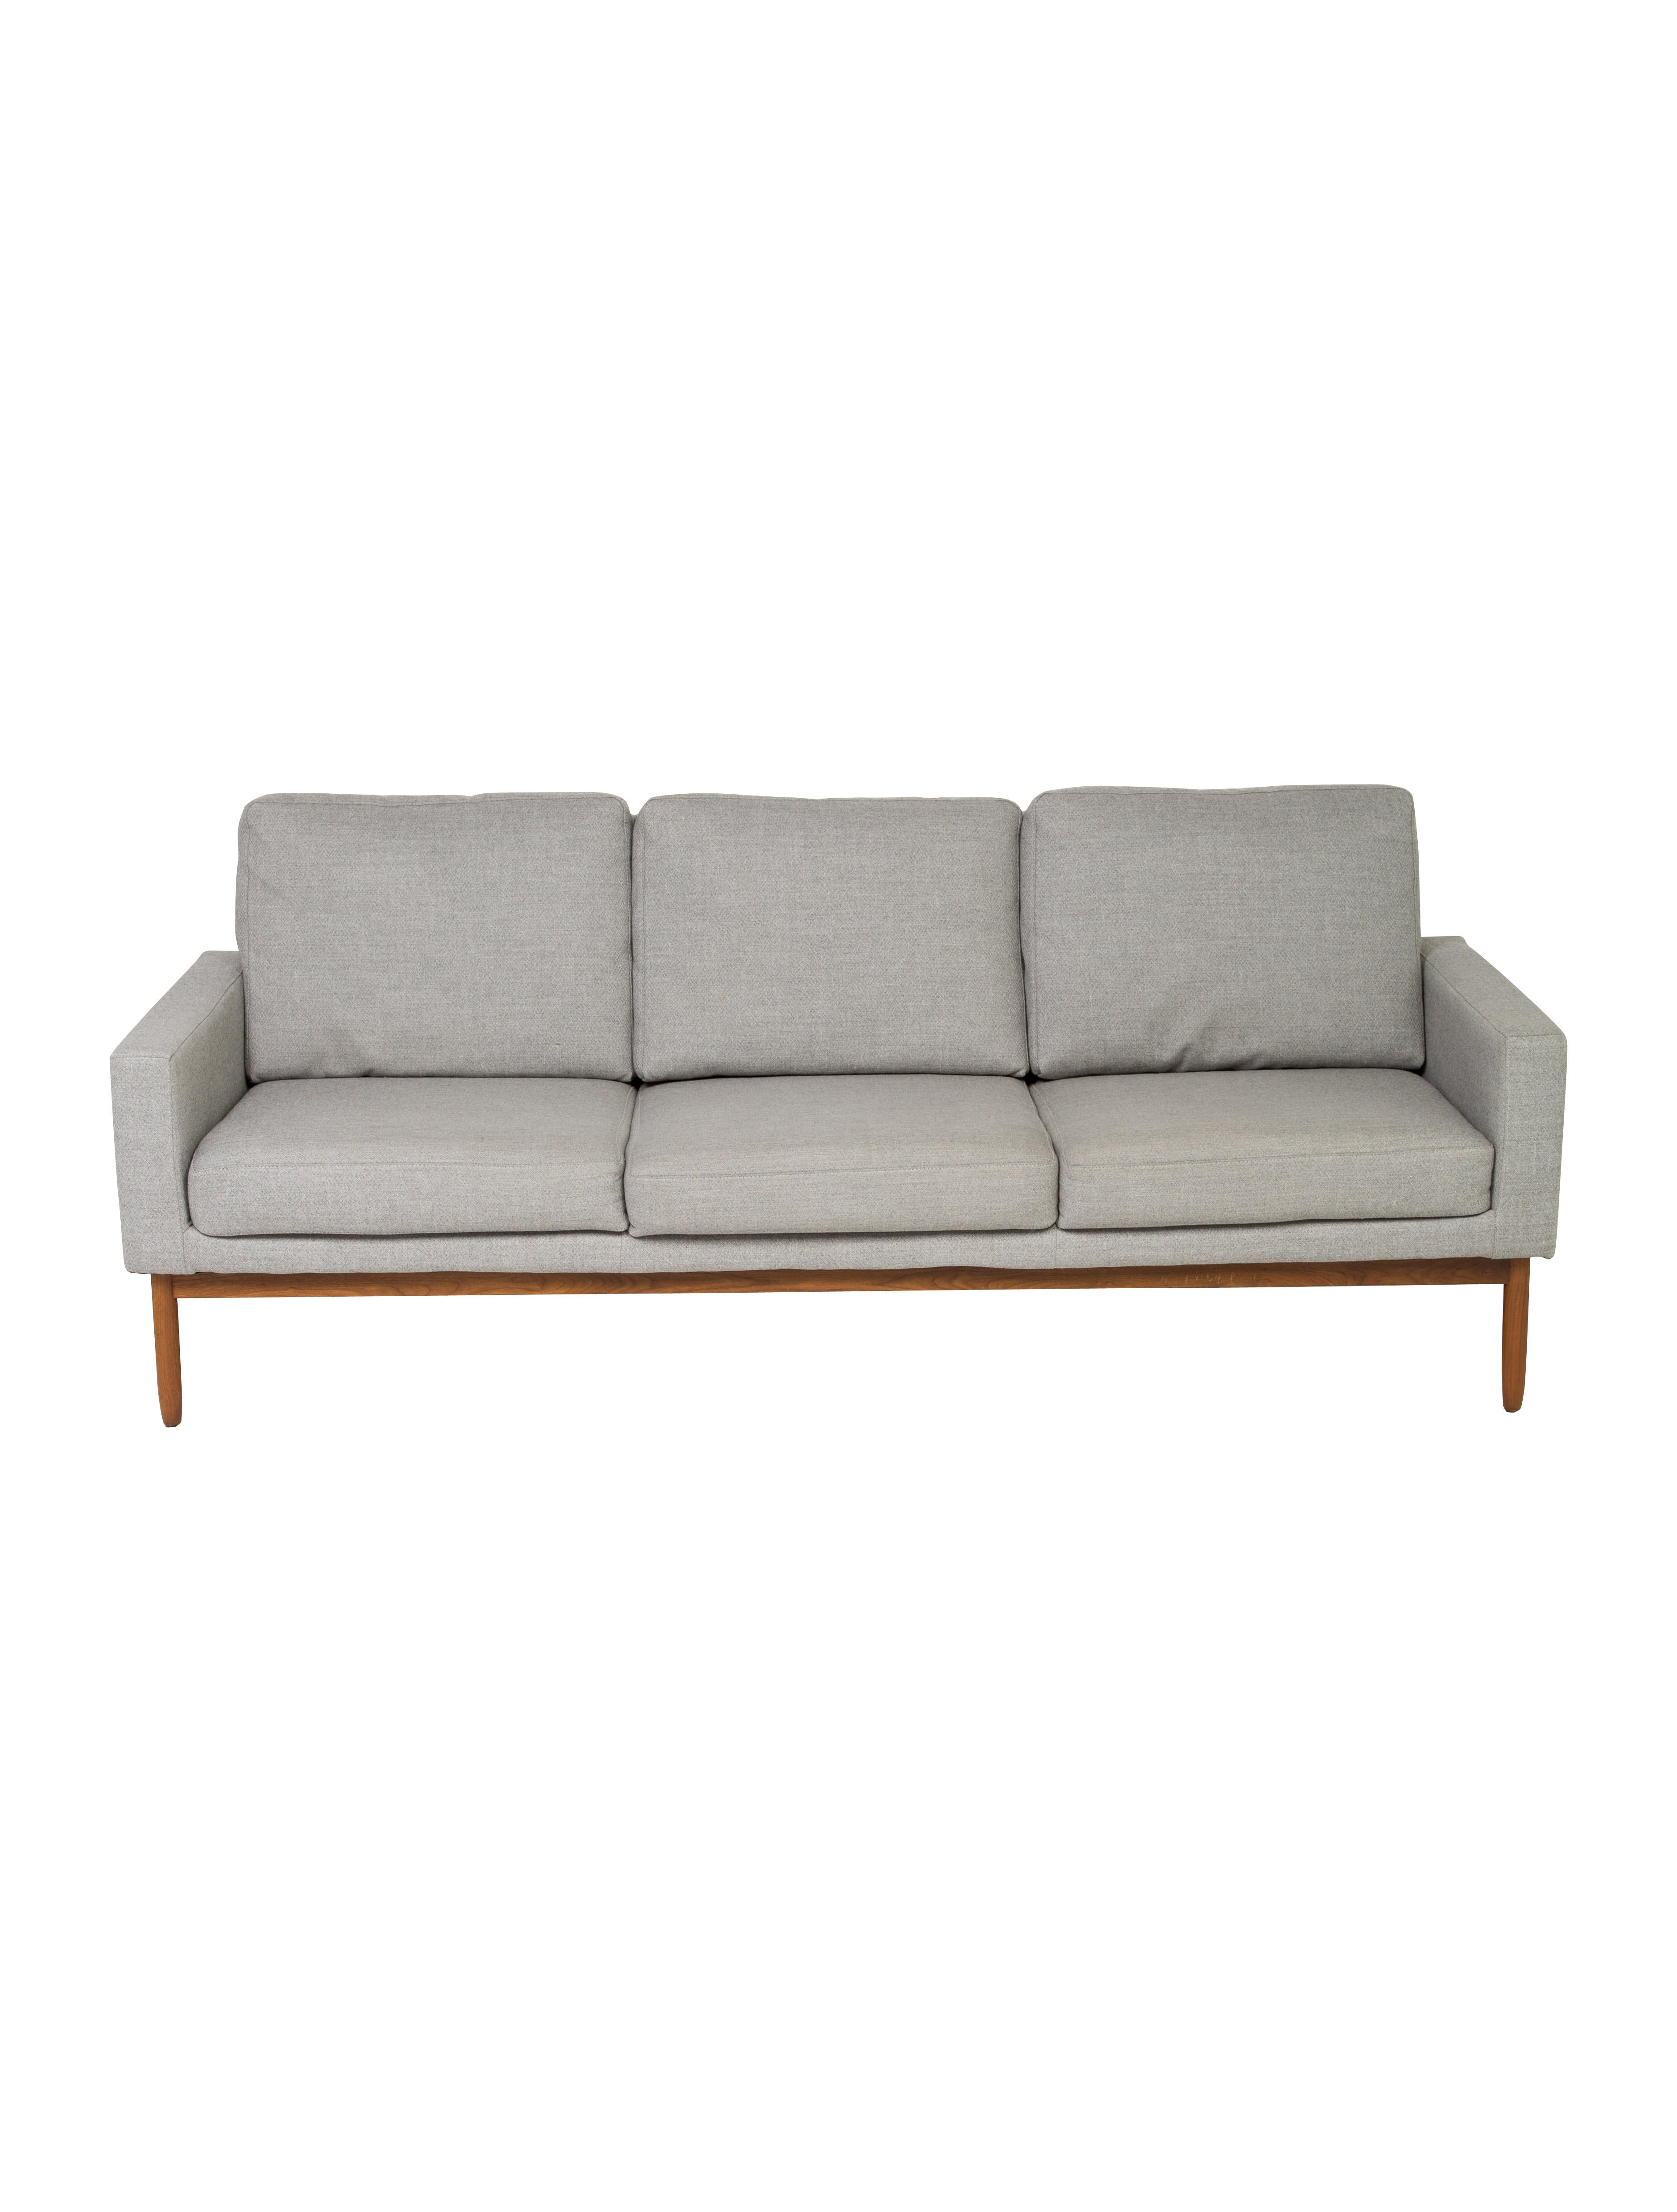 Design Within Reach Raleigh 3 Seat Sofa. Raleigh 3 Seat Sofa Sc 1 St The  RealReal .